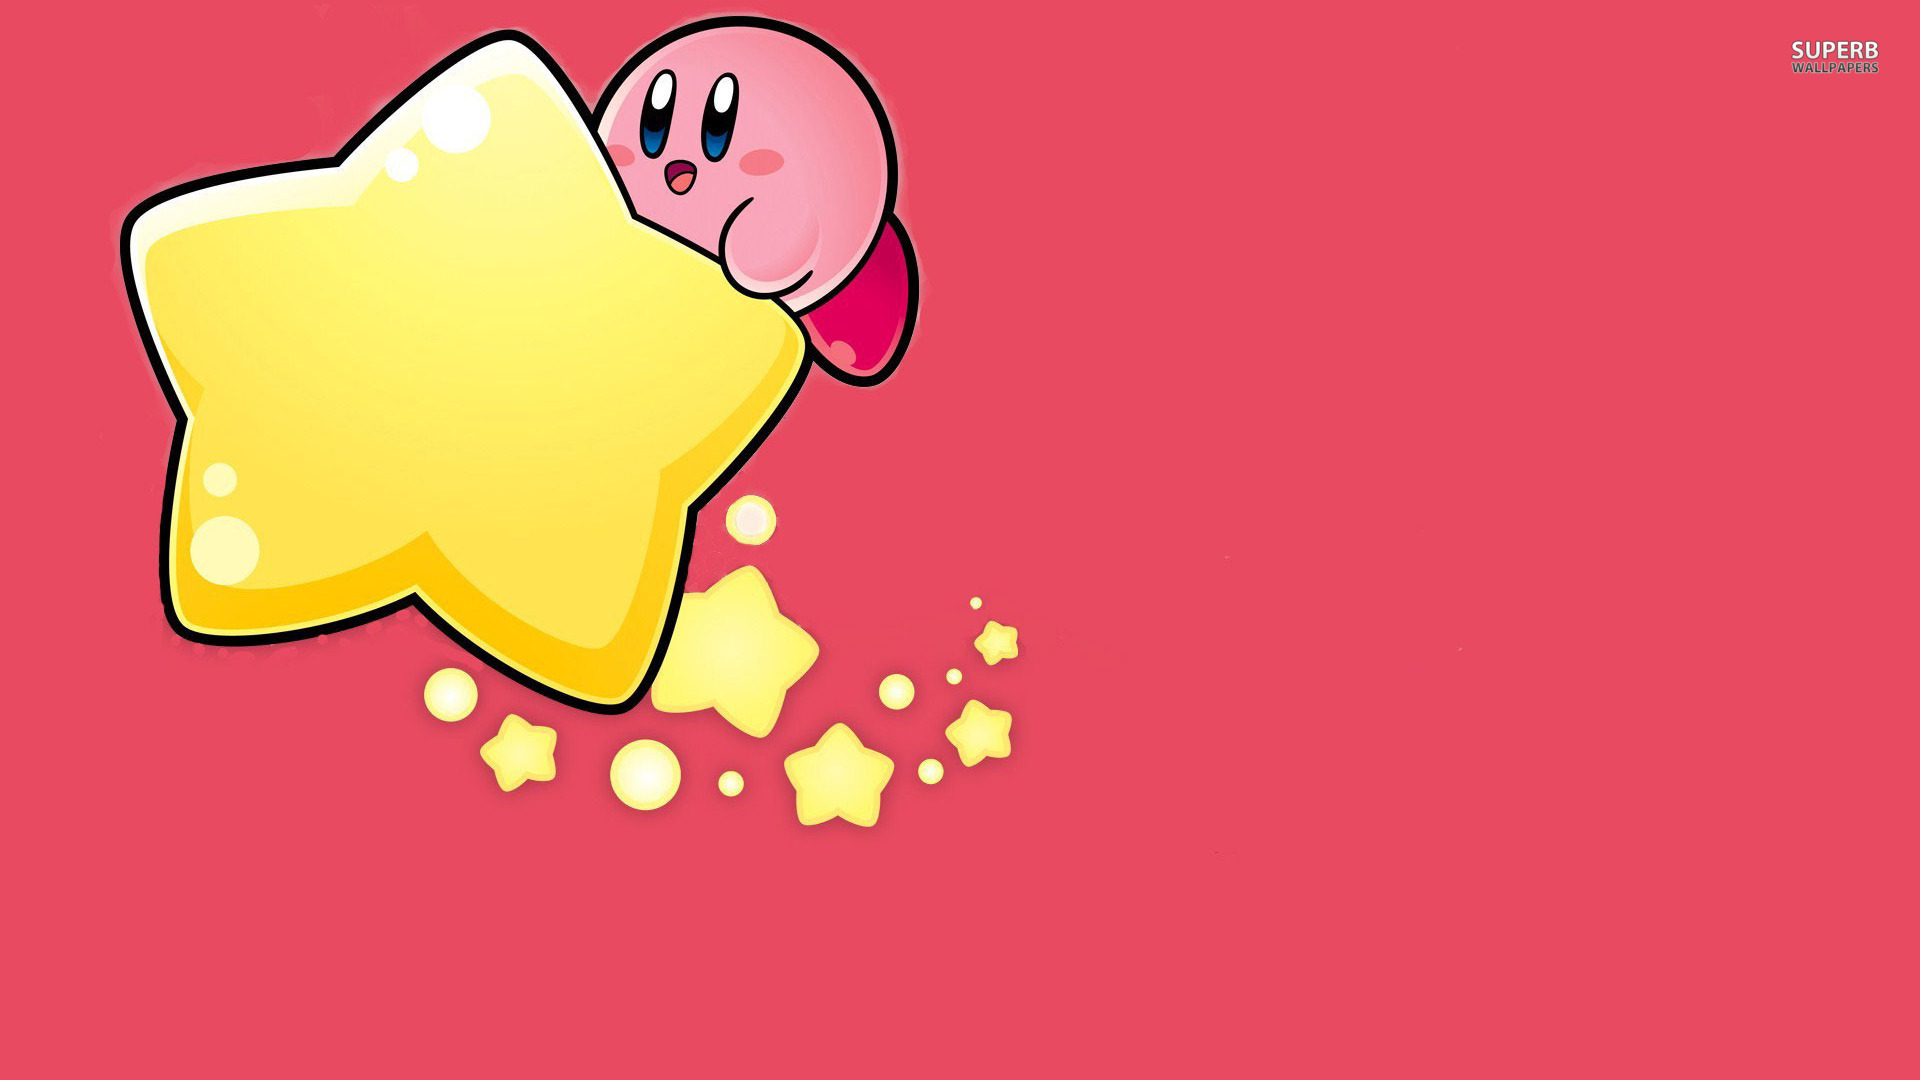 Kirby wallpaper 1920x1080